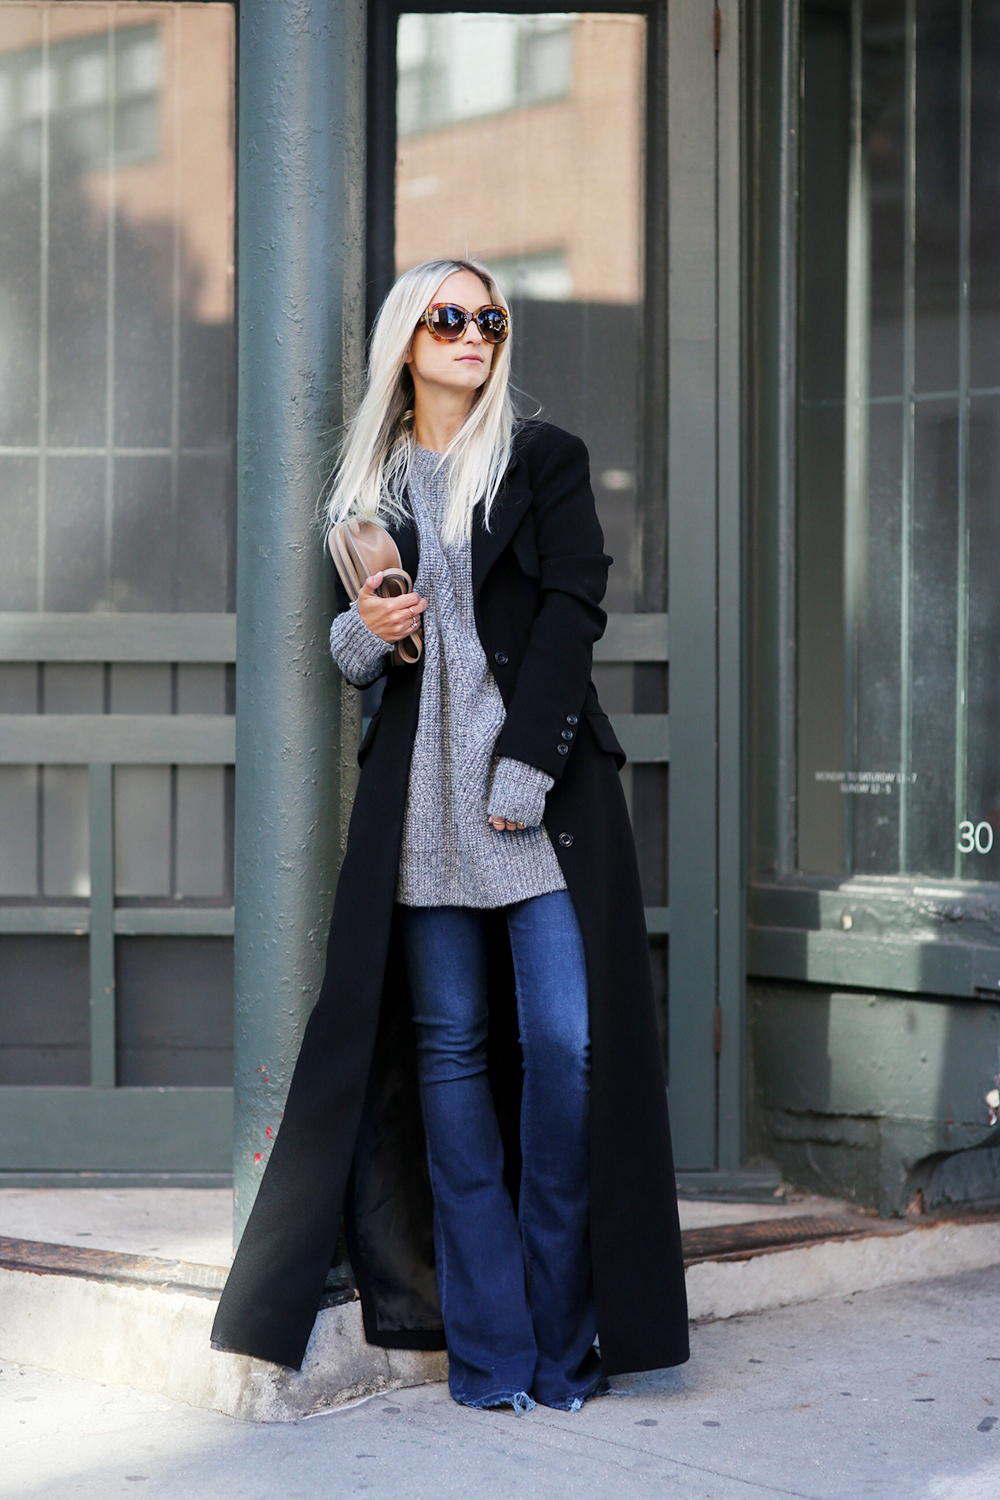 Dare to go all out in a floor length maxi coat this winter! Charlotte Groeneveld rocks this gorgeous black coat, wearing it over casual knitwear and a pair of flared denim jeans; a stylish and feminine look. Coat: Karen Millen, Knit: &Other Stories, Jeans: True Religion.